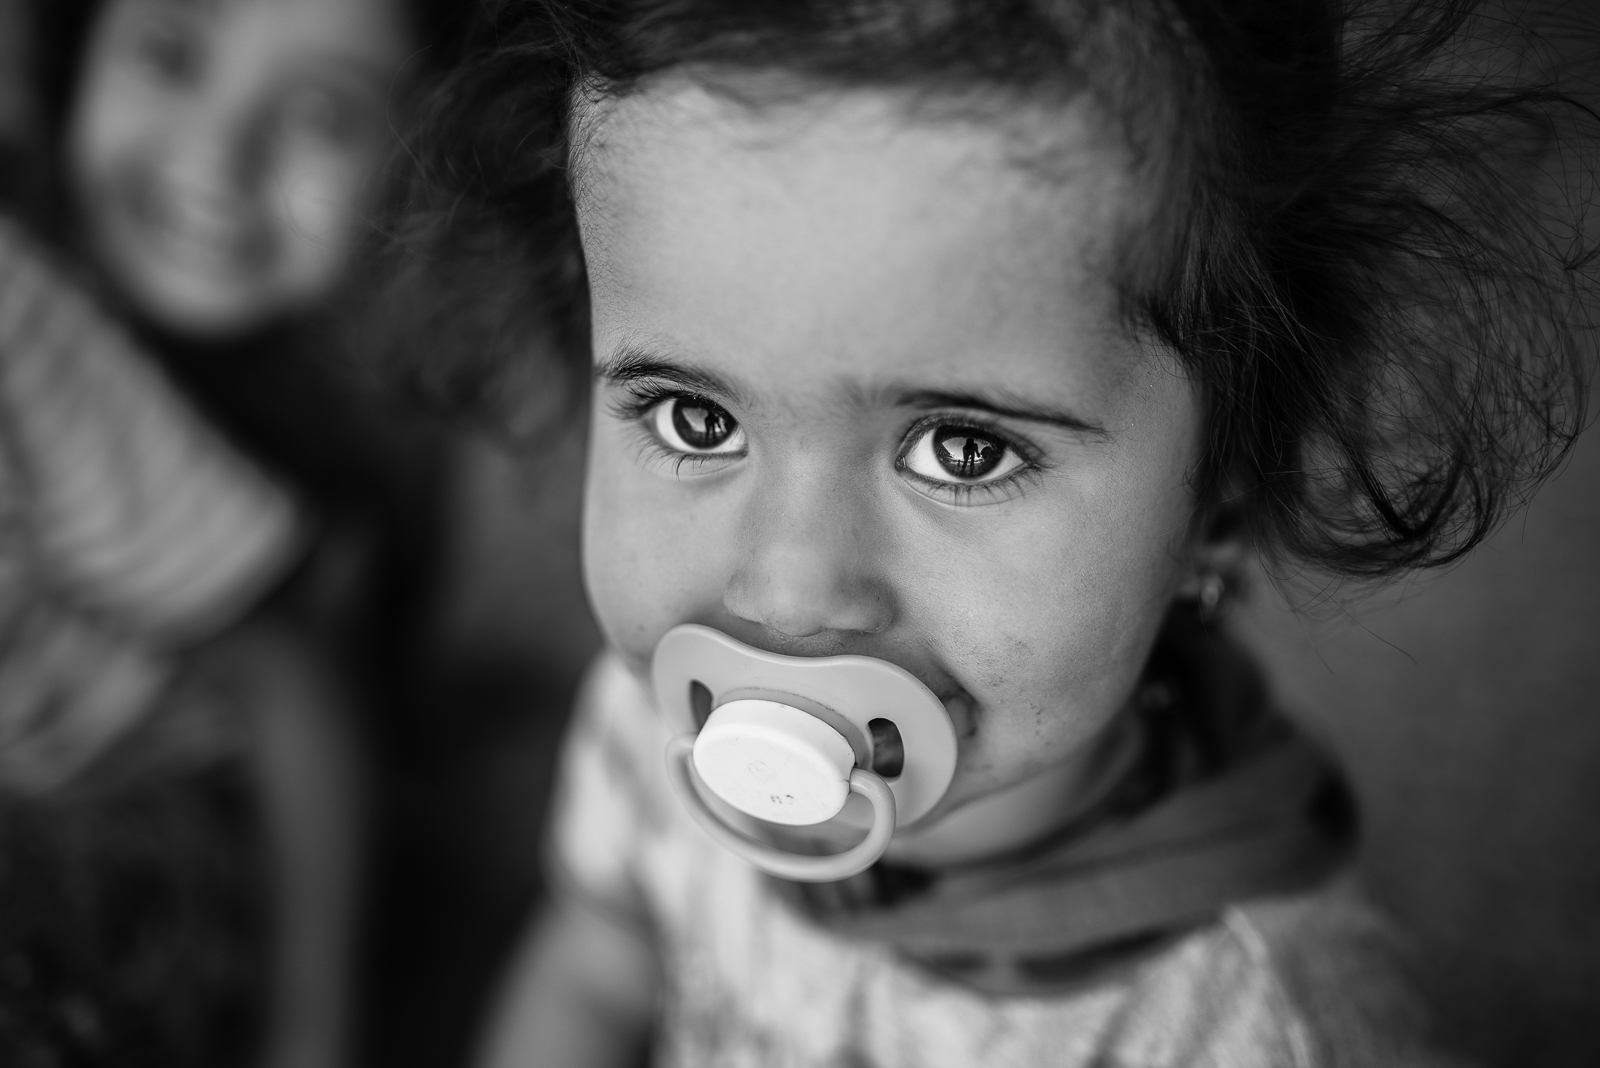 The big eyes of a little girl in an ex-school of Erbil